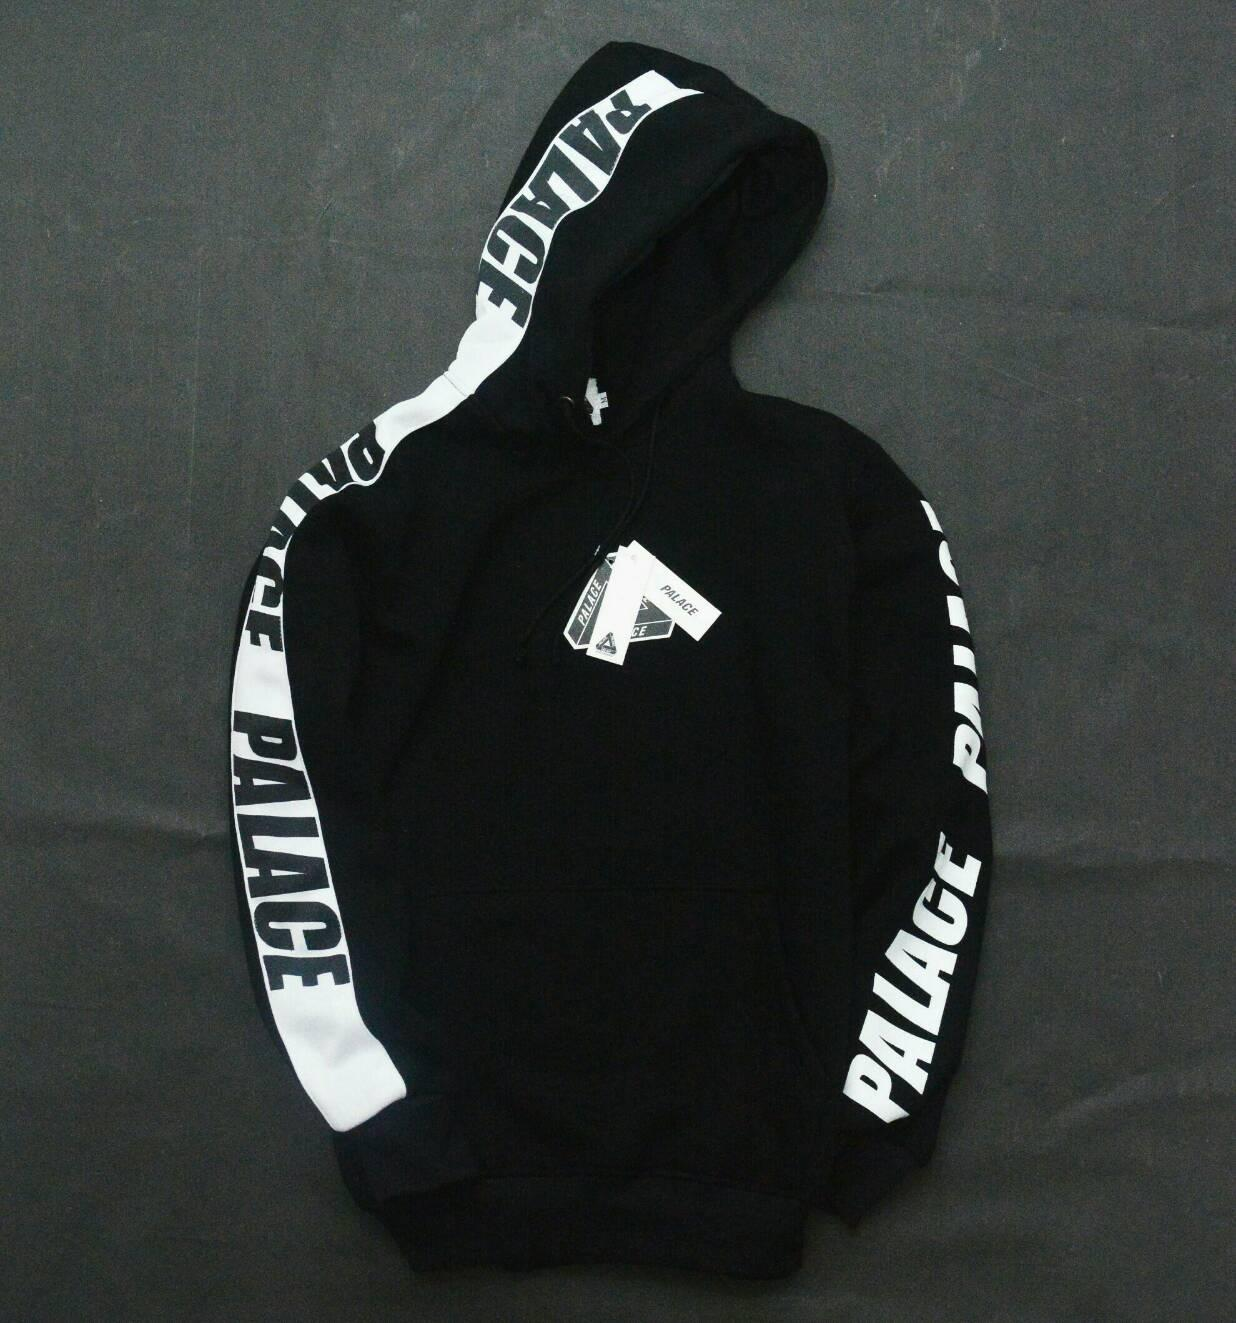 PALACE / JAKET HOODIE PALACE BLACK / JAKET UNISEX SIMPLE / HYPEBEAST JACKET